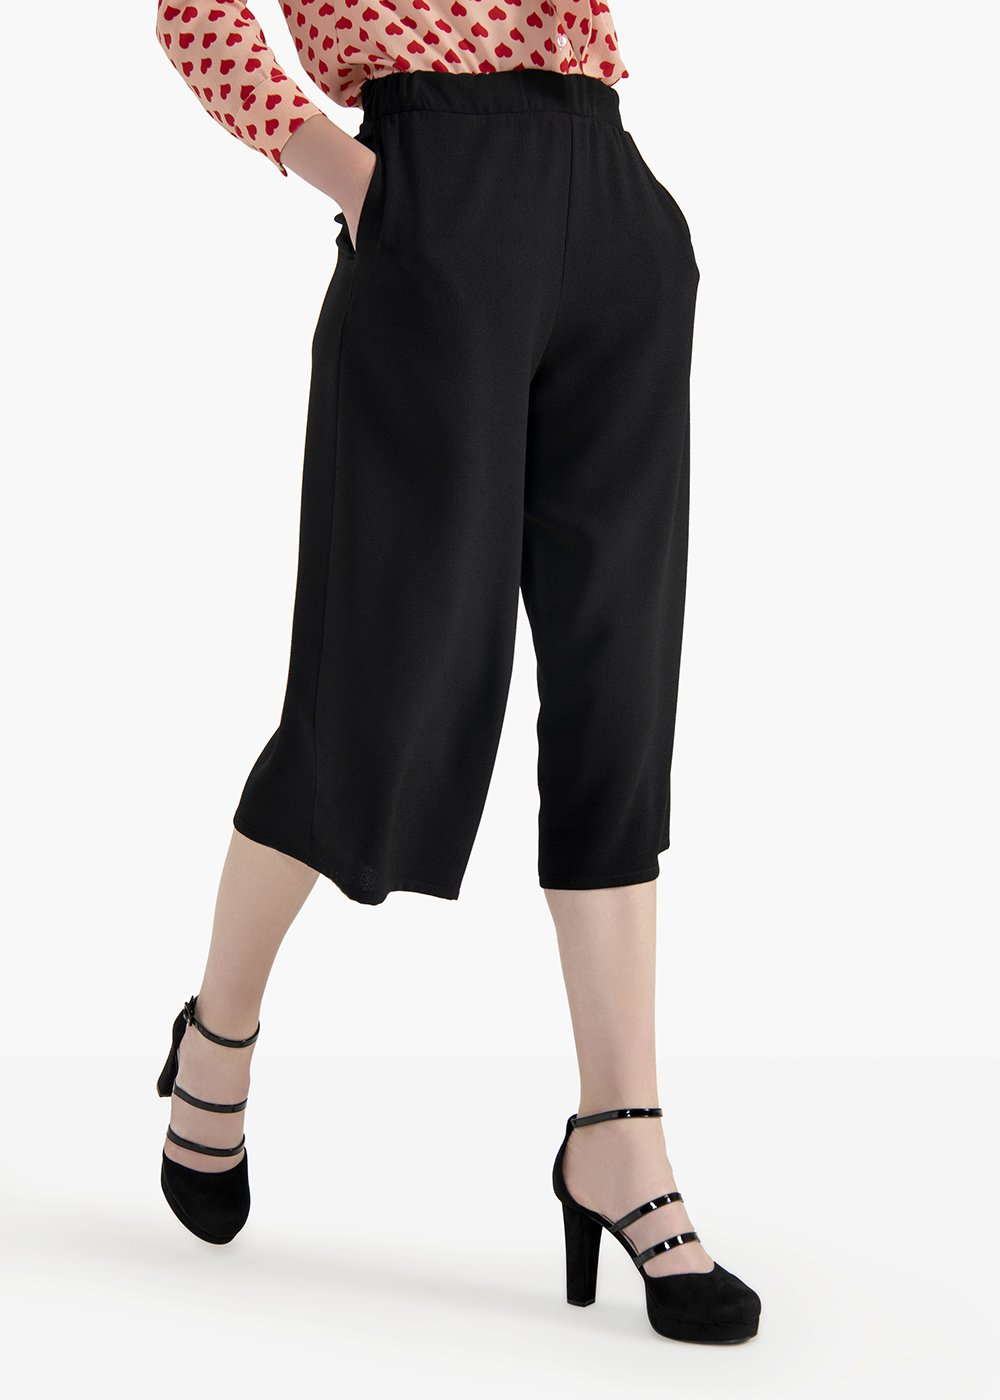 Megan crêpe pants with pockets